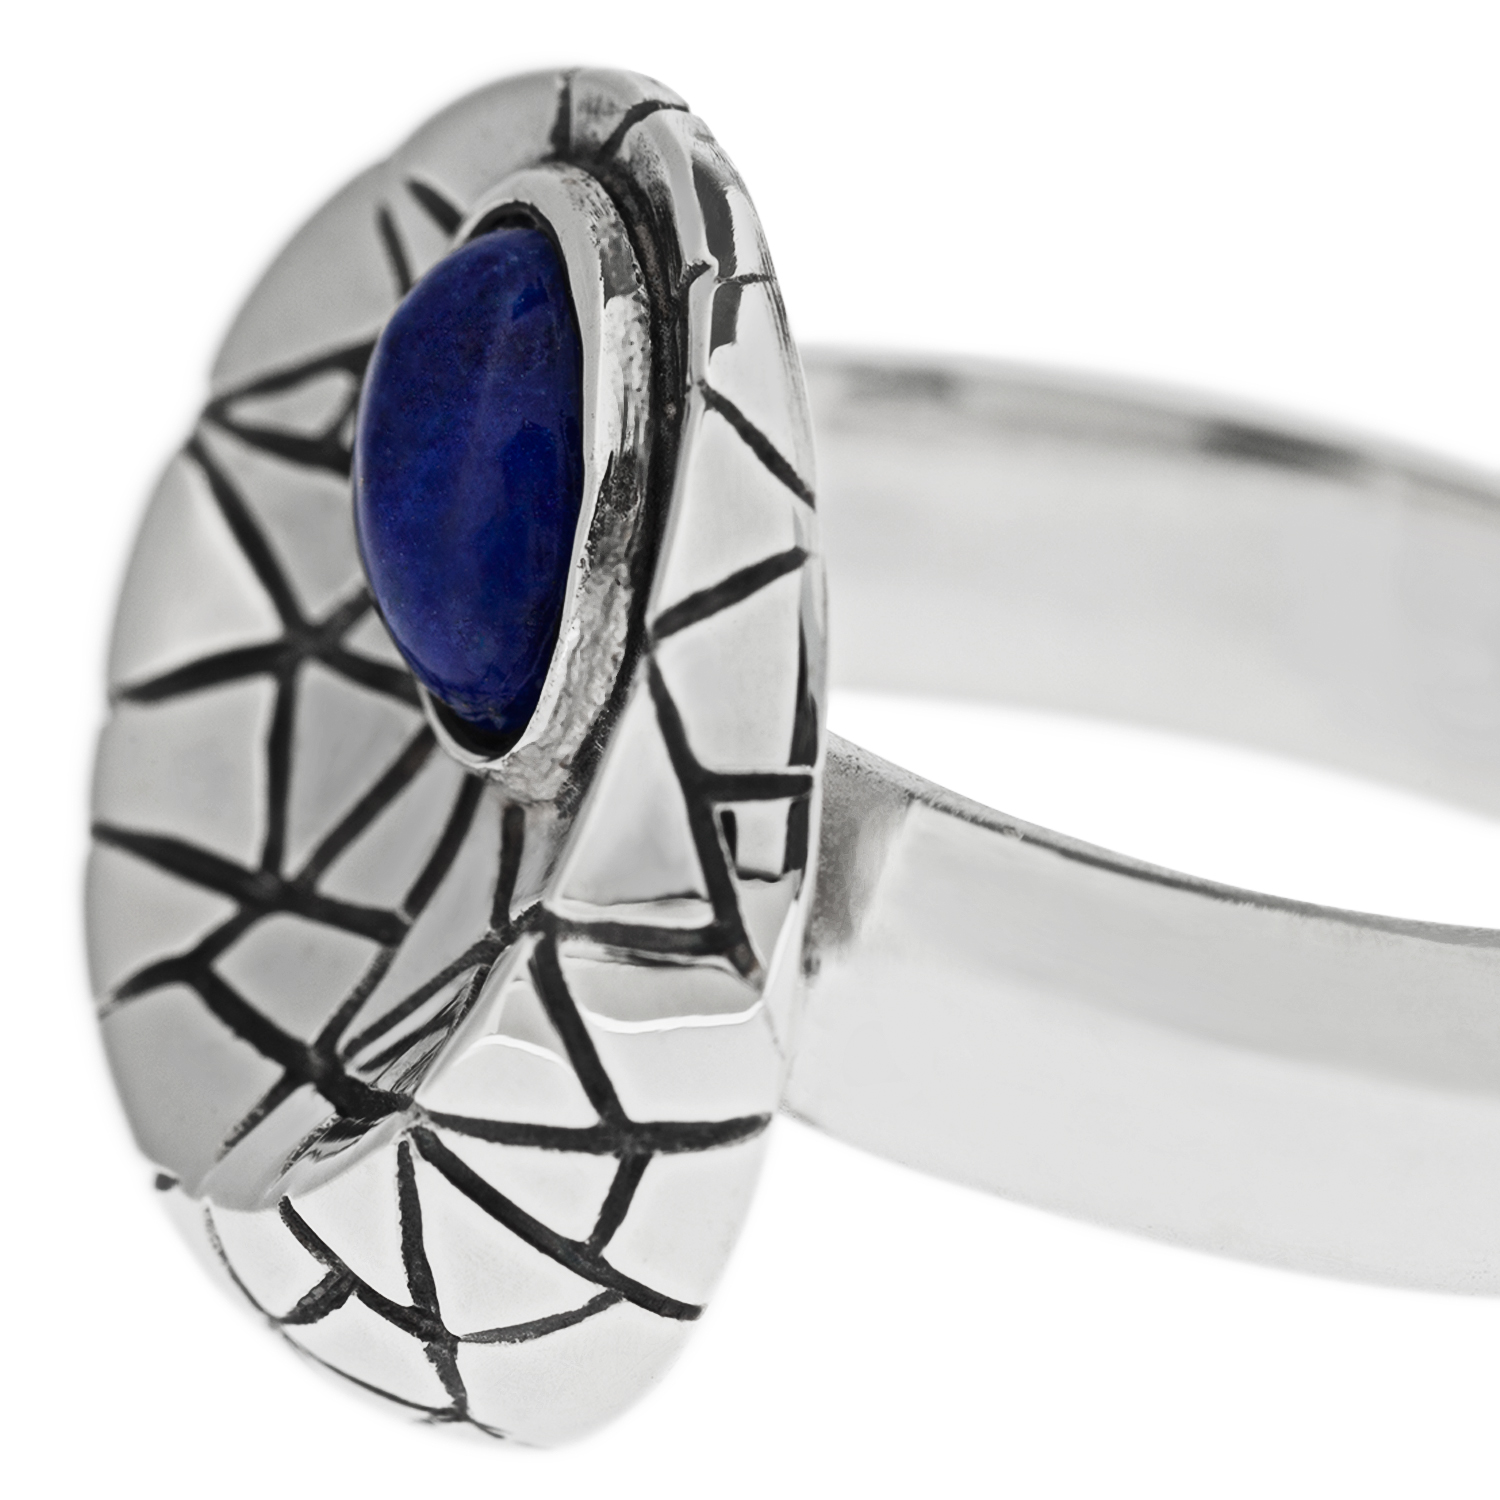 Lapislazuli small ring